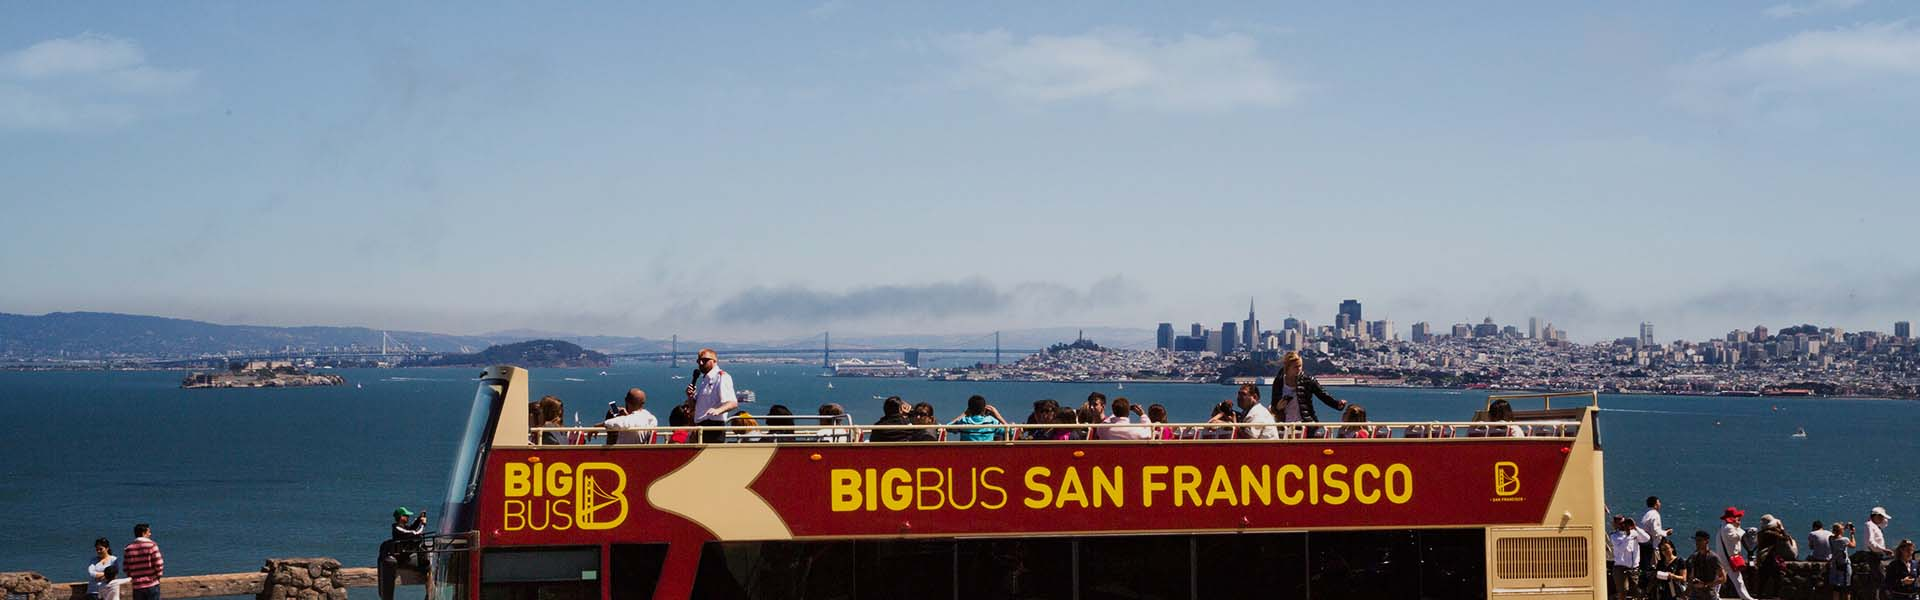 Open-top sightseeing tour in San Francisco